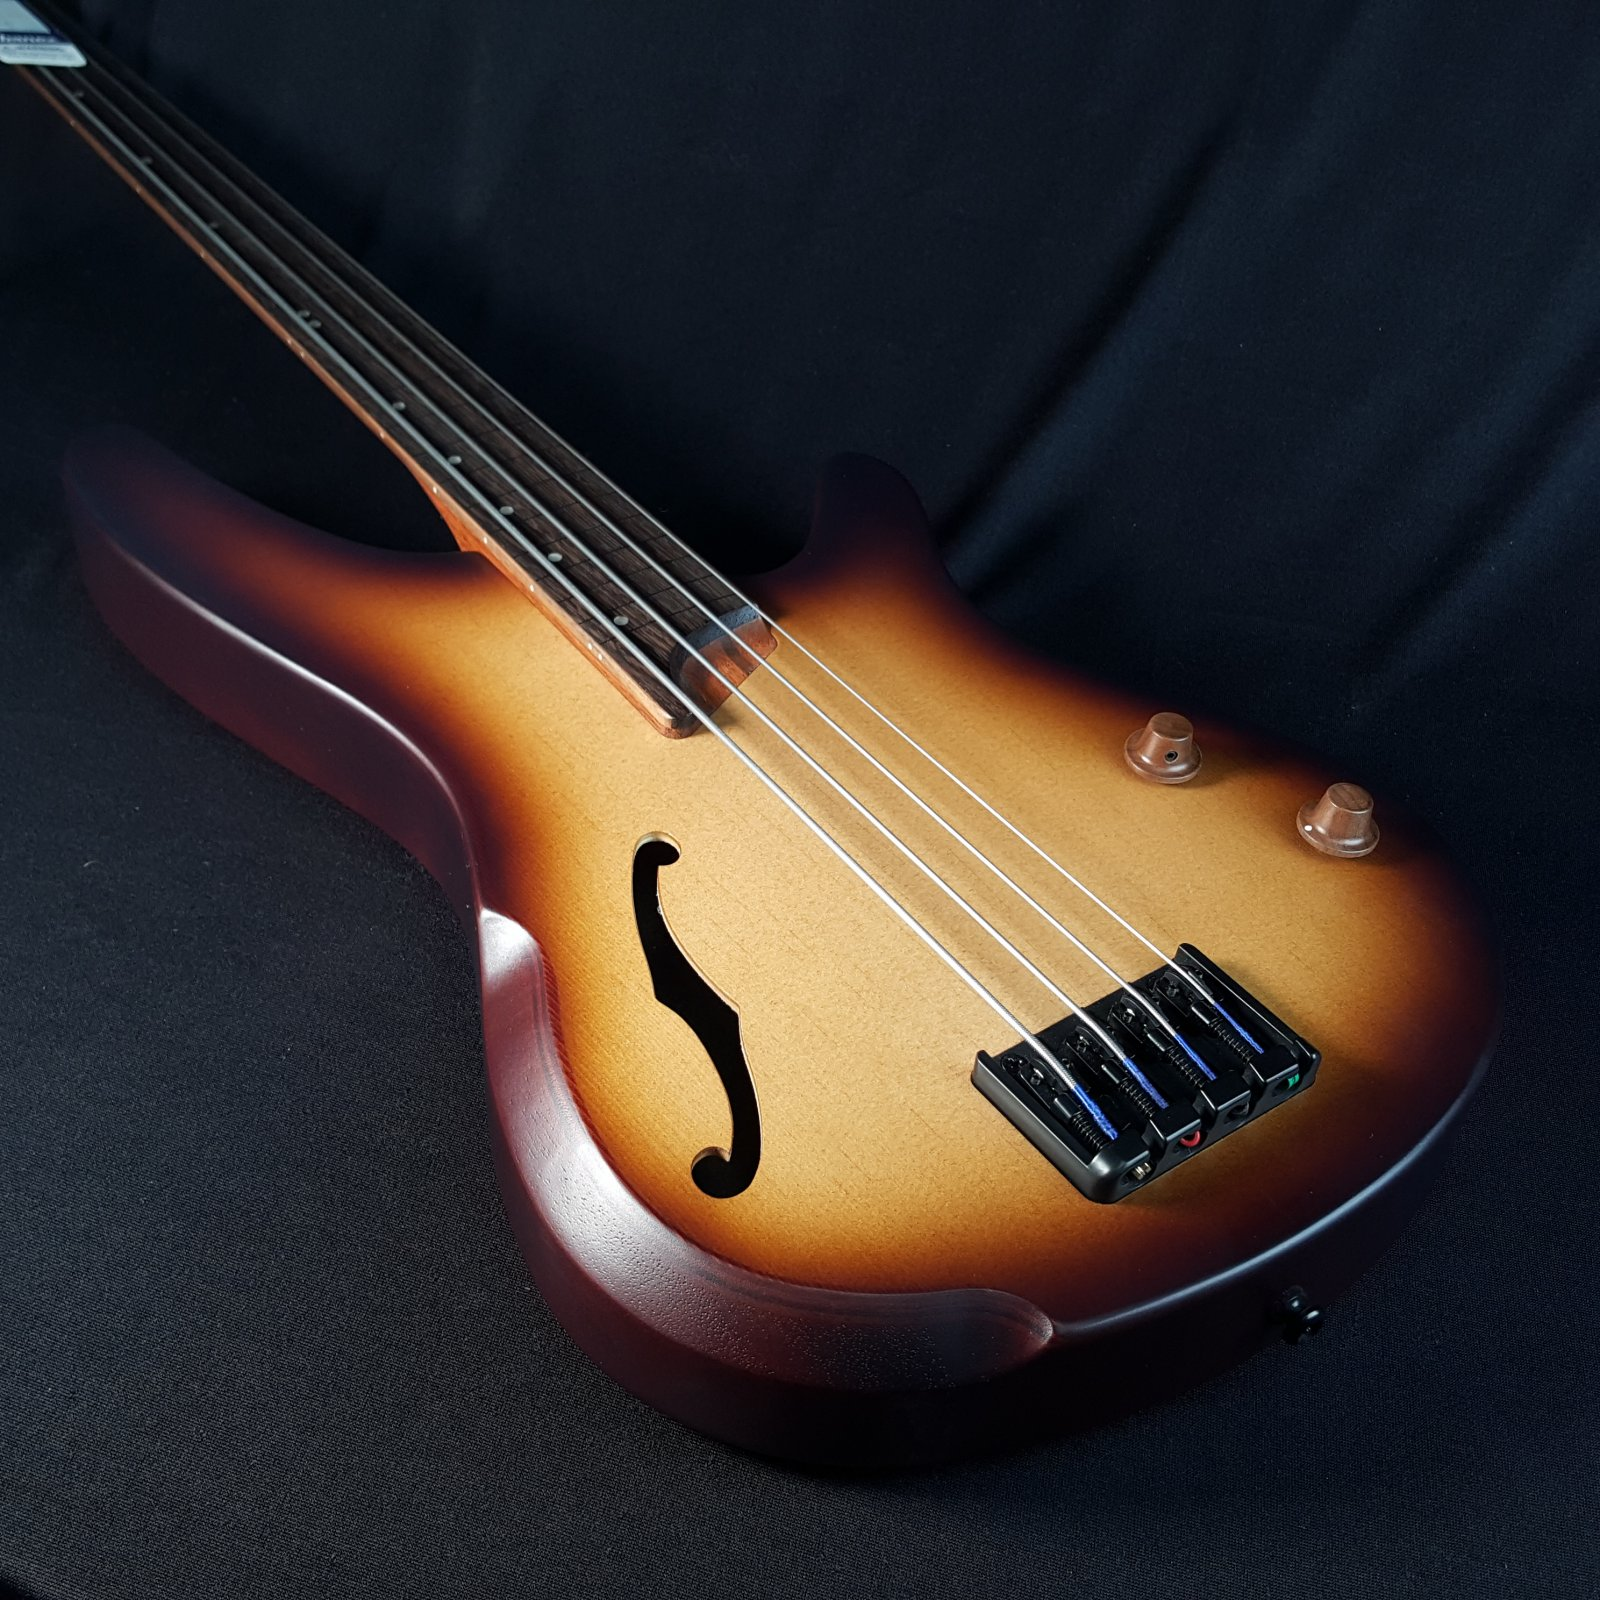 Ibanez SRH500FNNF Semi-Hollow 4 String Fretless Electric Bass Guitar